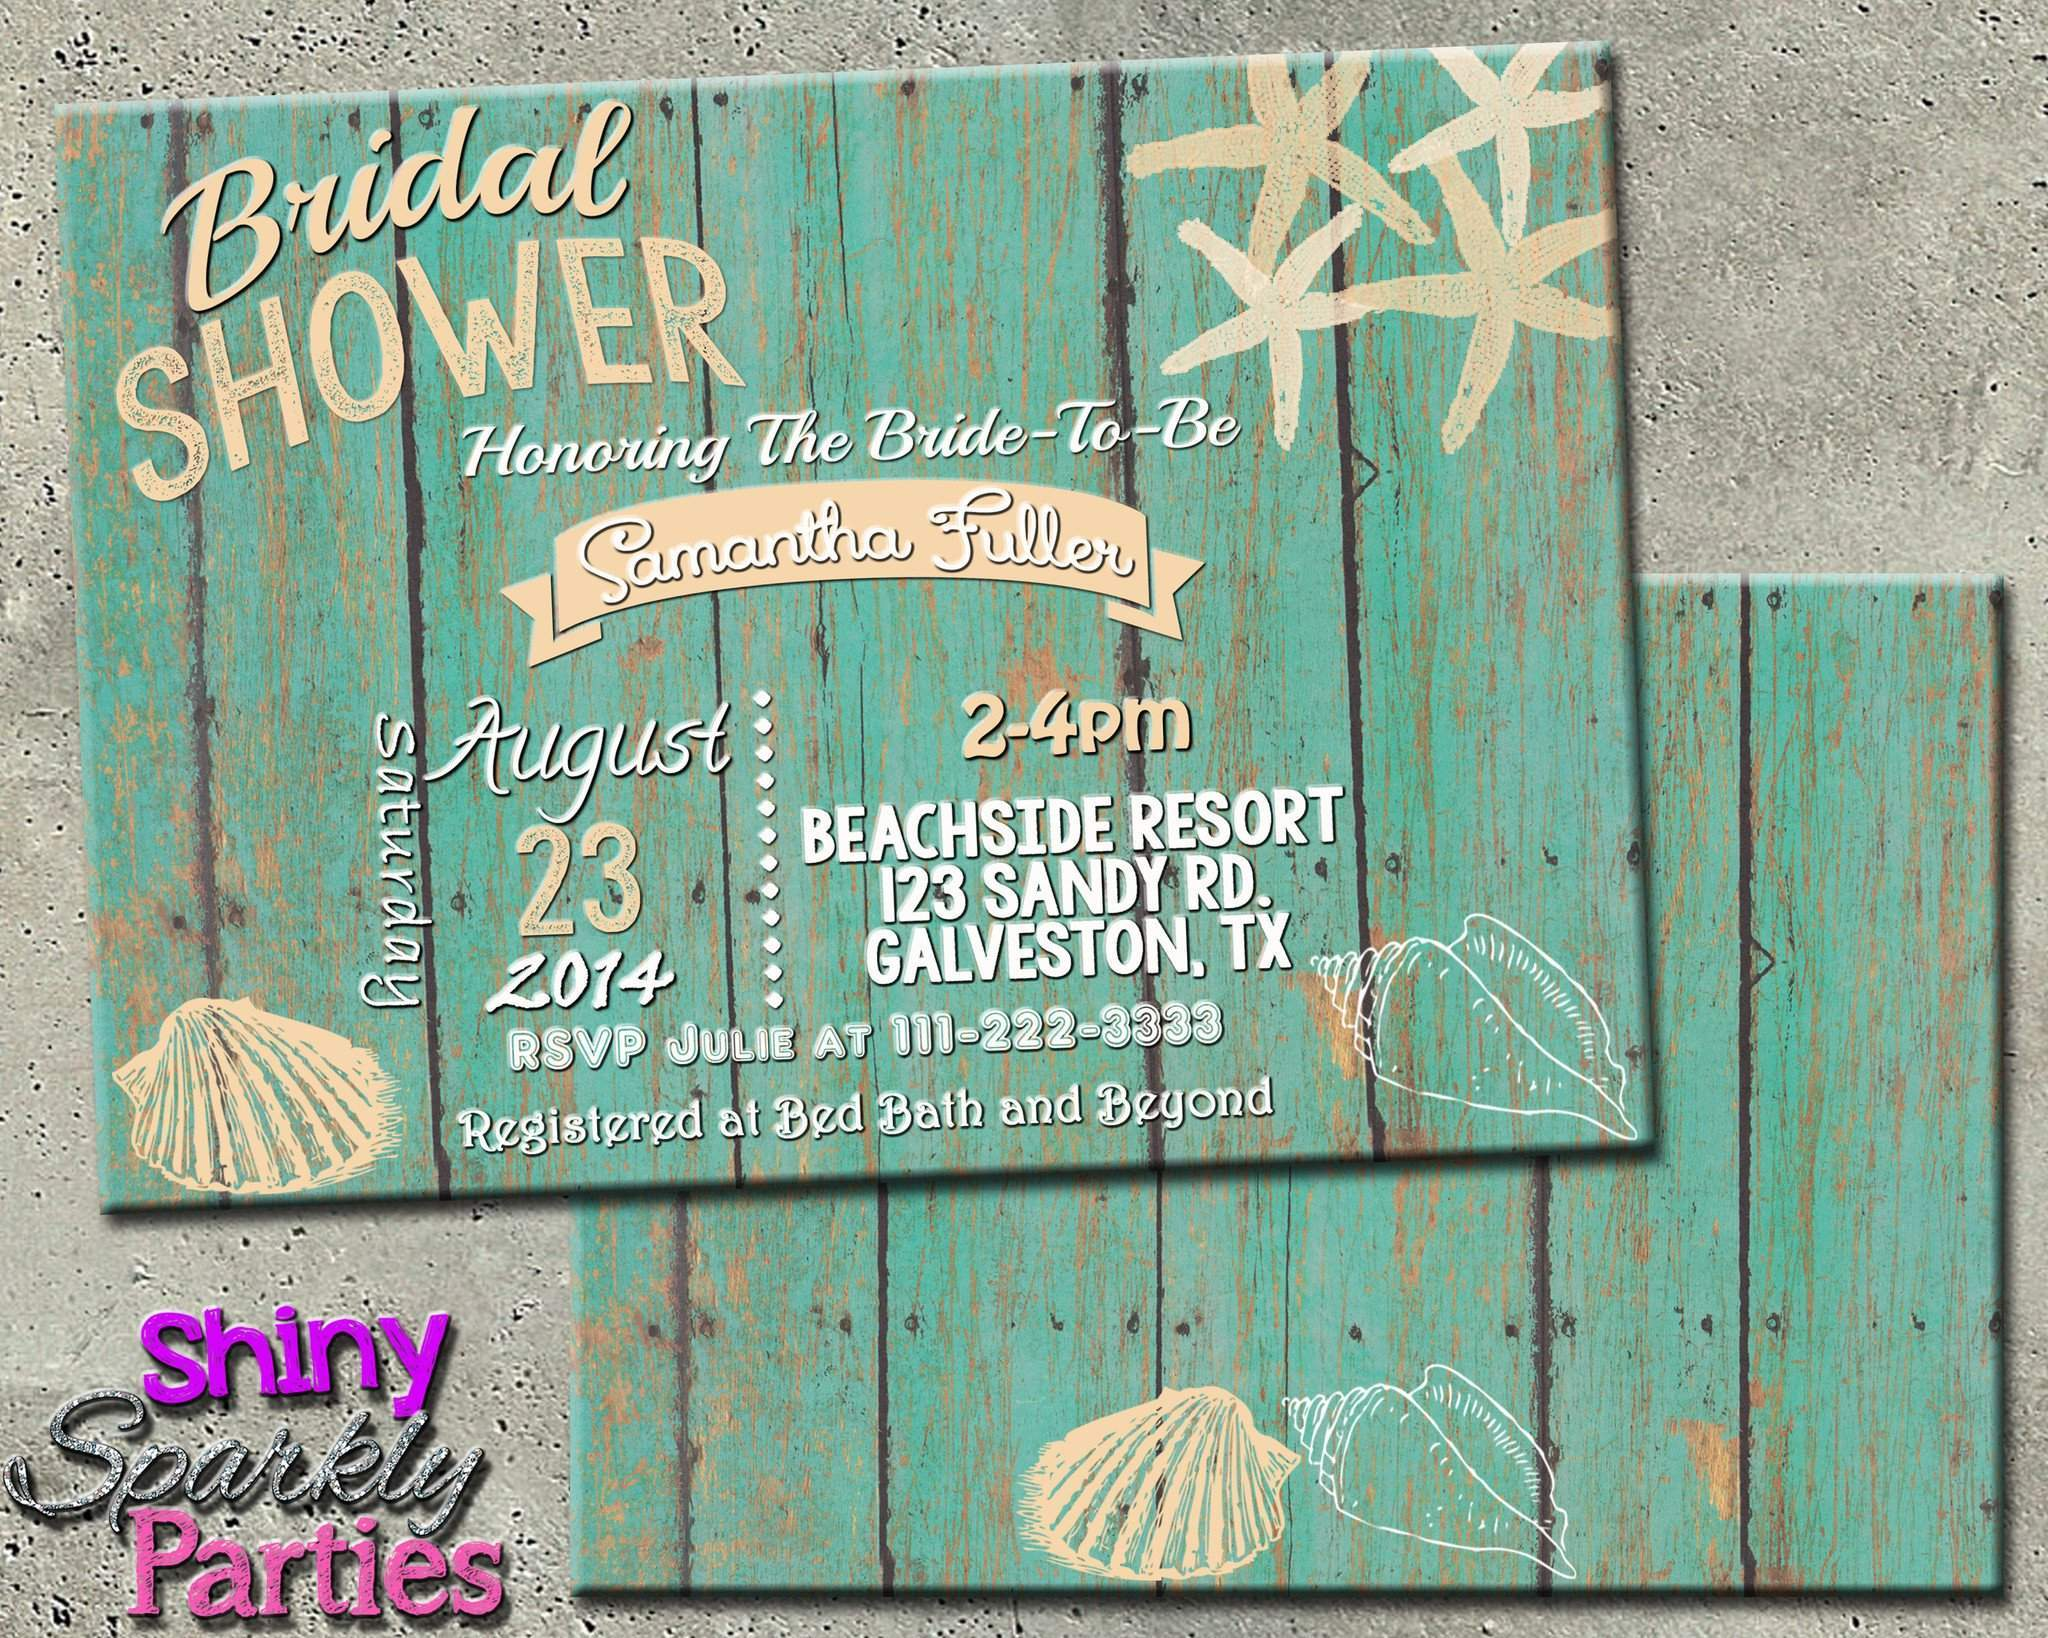 photograph relating to Printable Shower Invitations titled Beach front Themed Bridal Shower Invitation